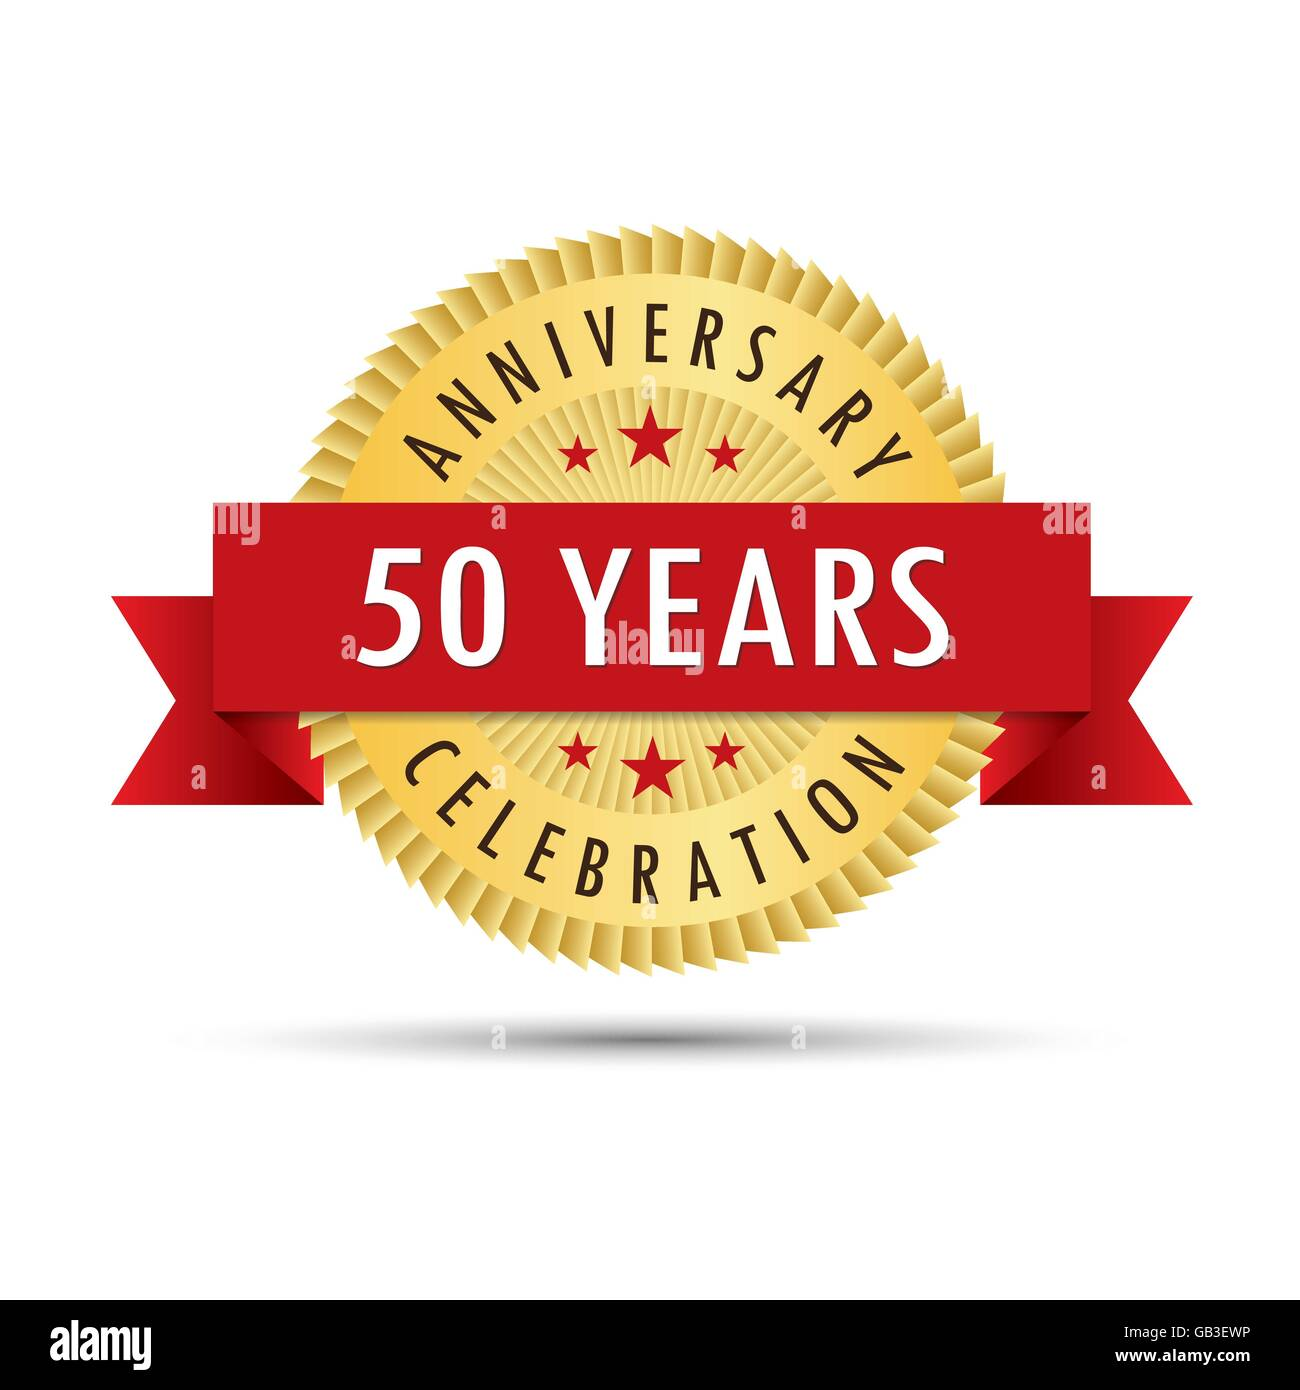 50th Wedding Anniversary Stock Vector Images - Alamy